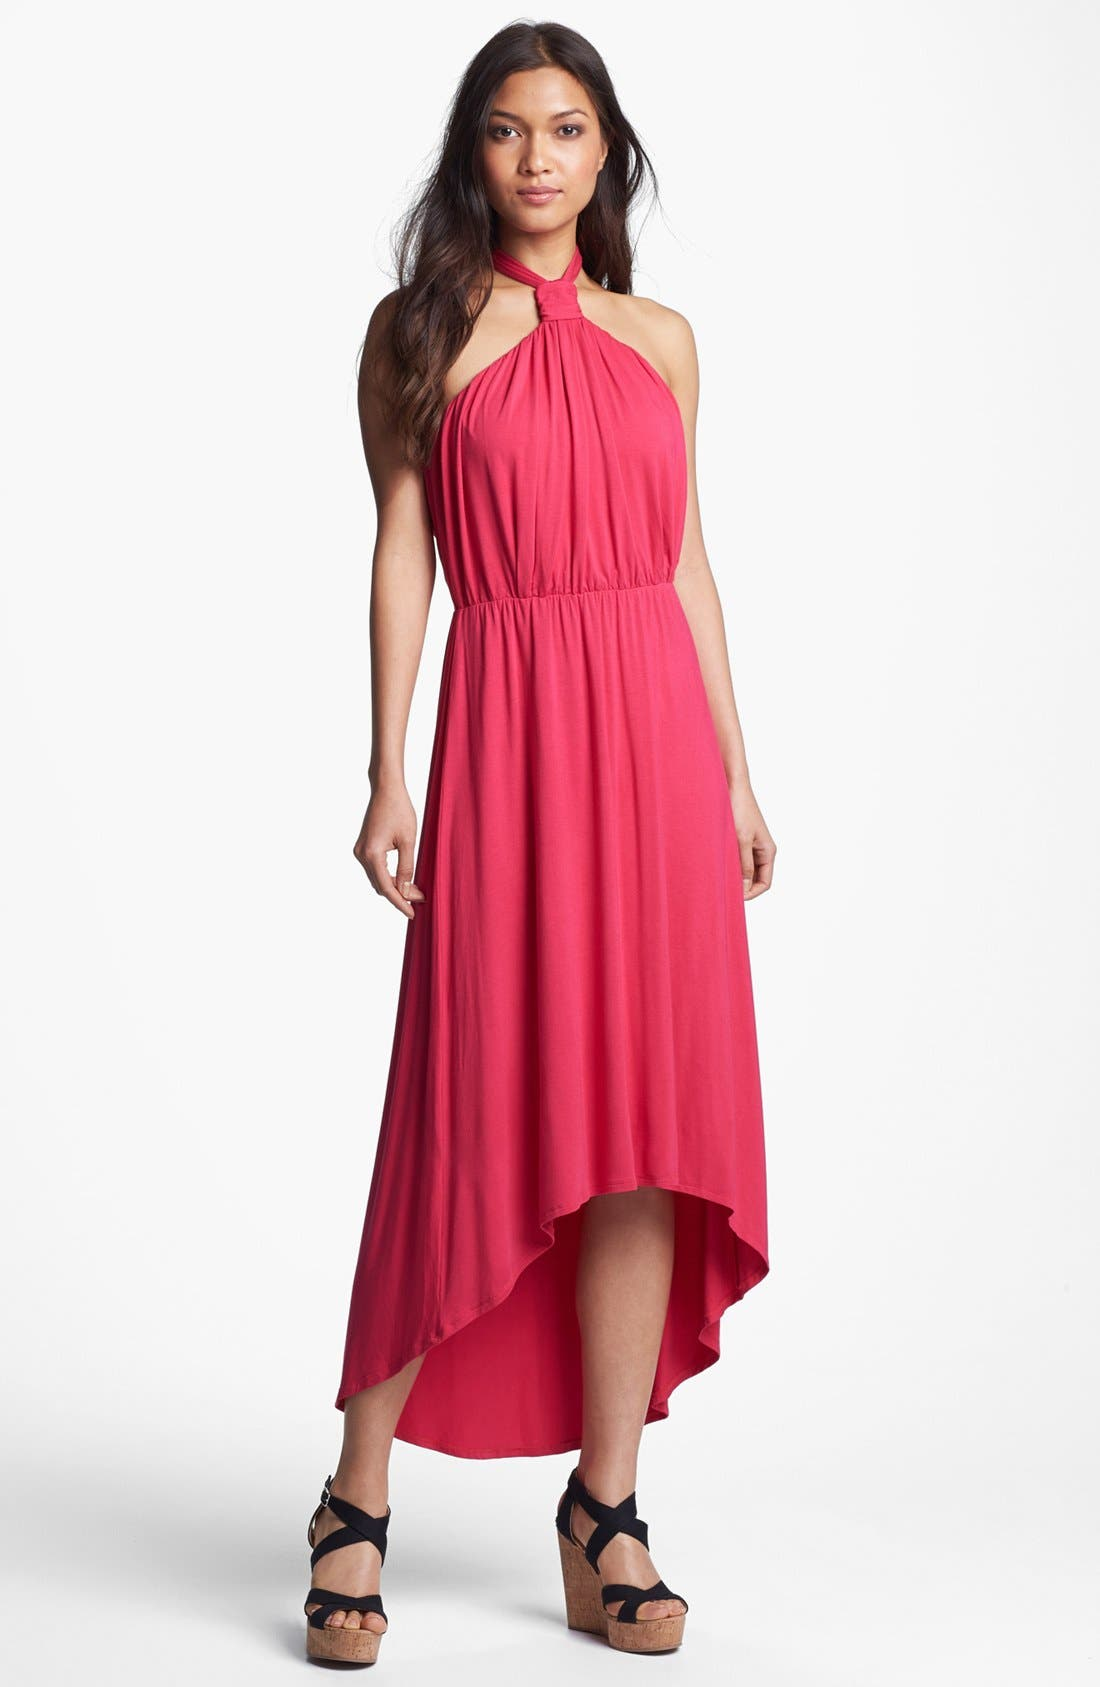 Alternate Image 1 Selected - Felicity & Coco Halter High/Low Maxi Dress (Regular & Petite) (Nordstrom Exclusive)